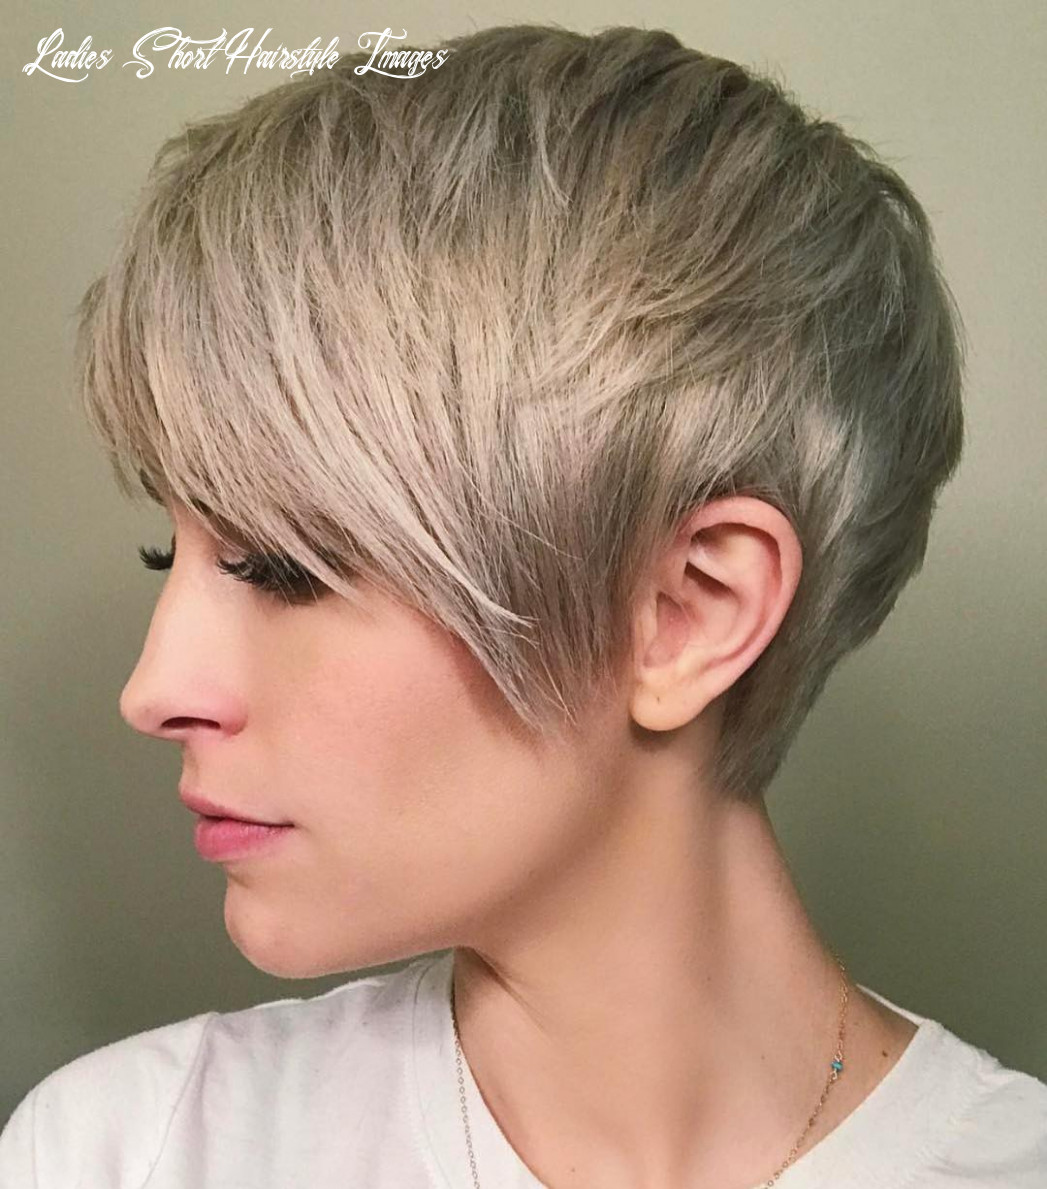 12 best short straight hairstyle trends 12 ladies short hairstyle images